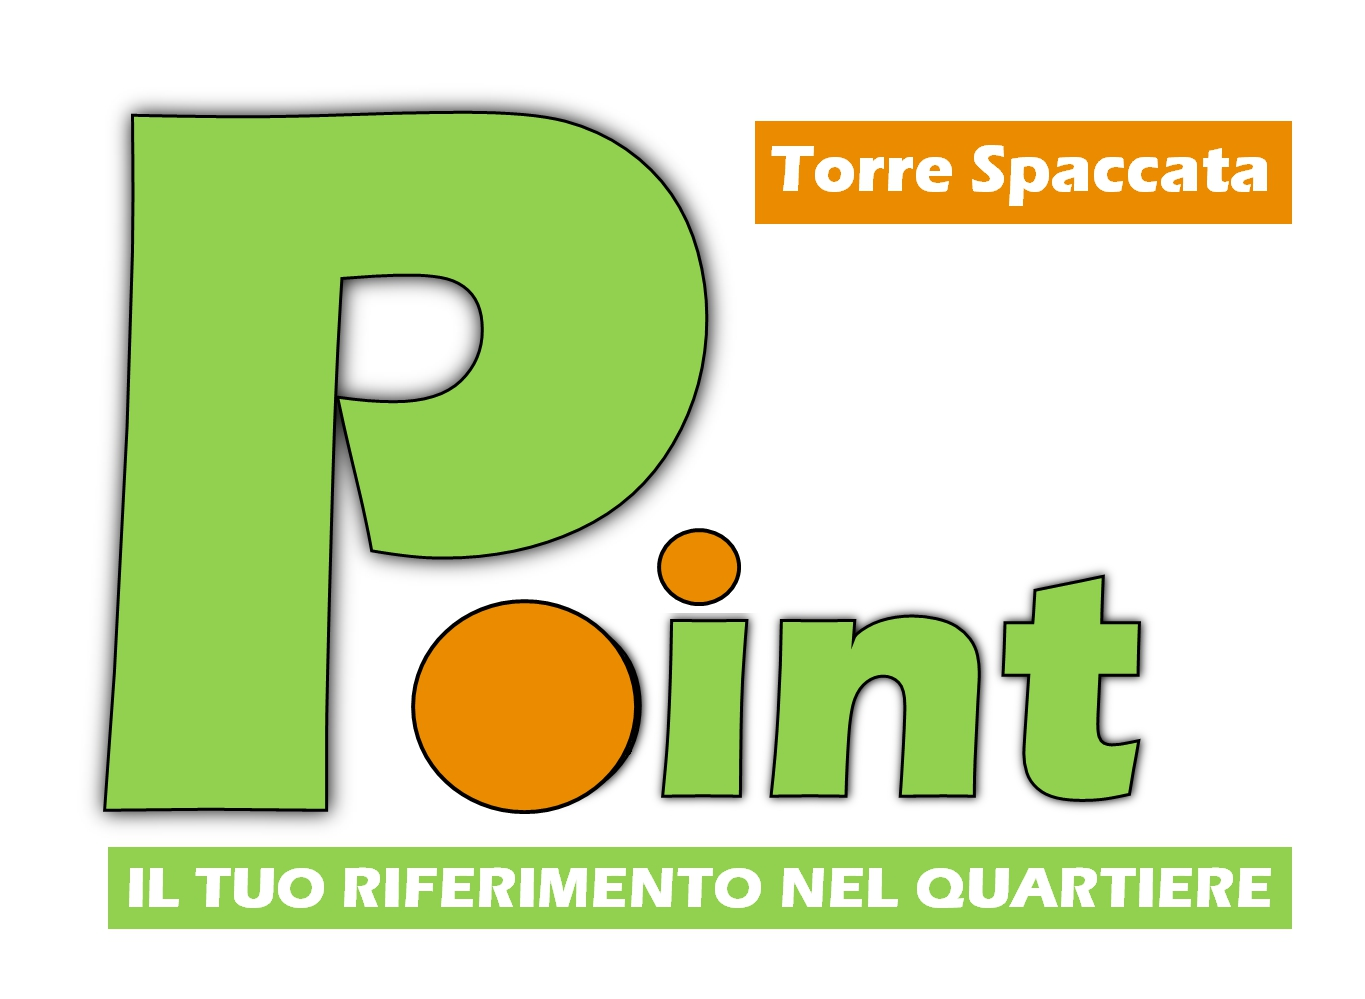 Logo Torre Spaccata Point